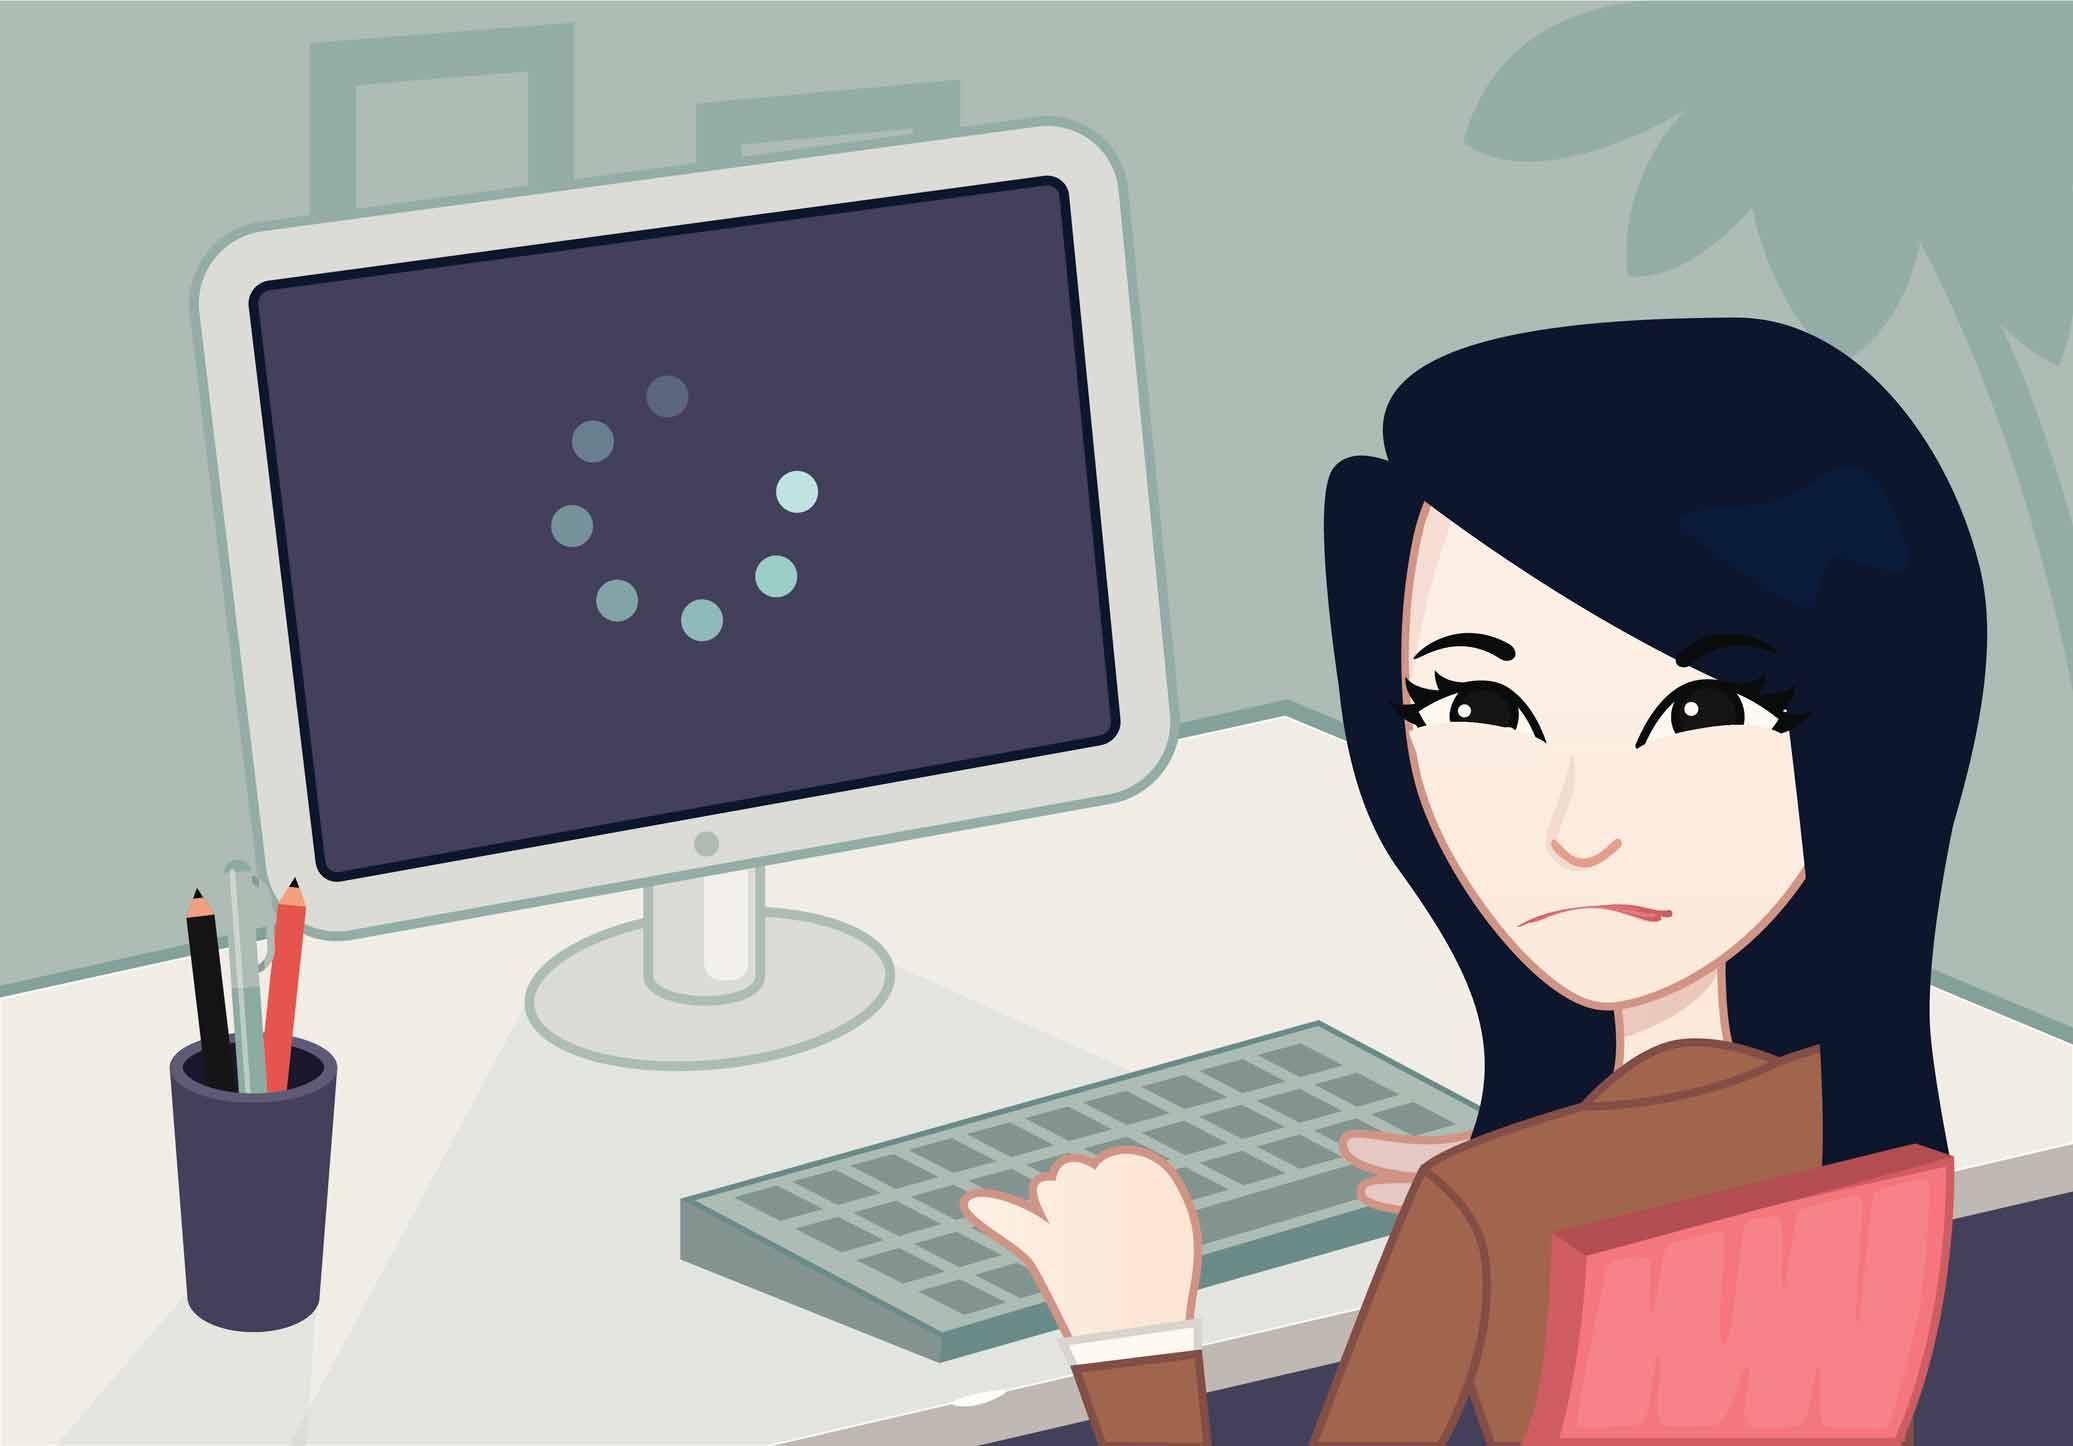 illustration of frustrated woman at computer